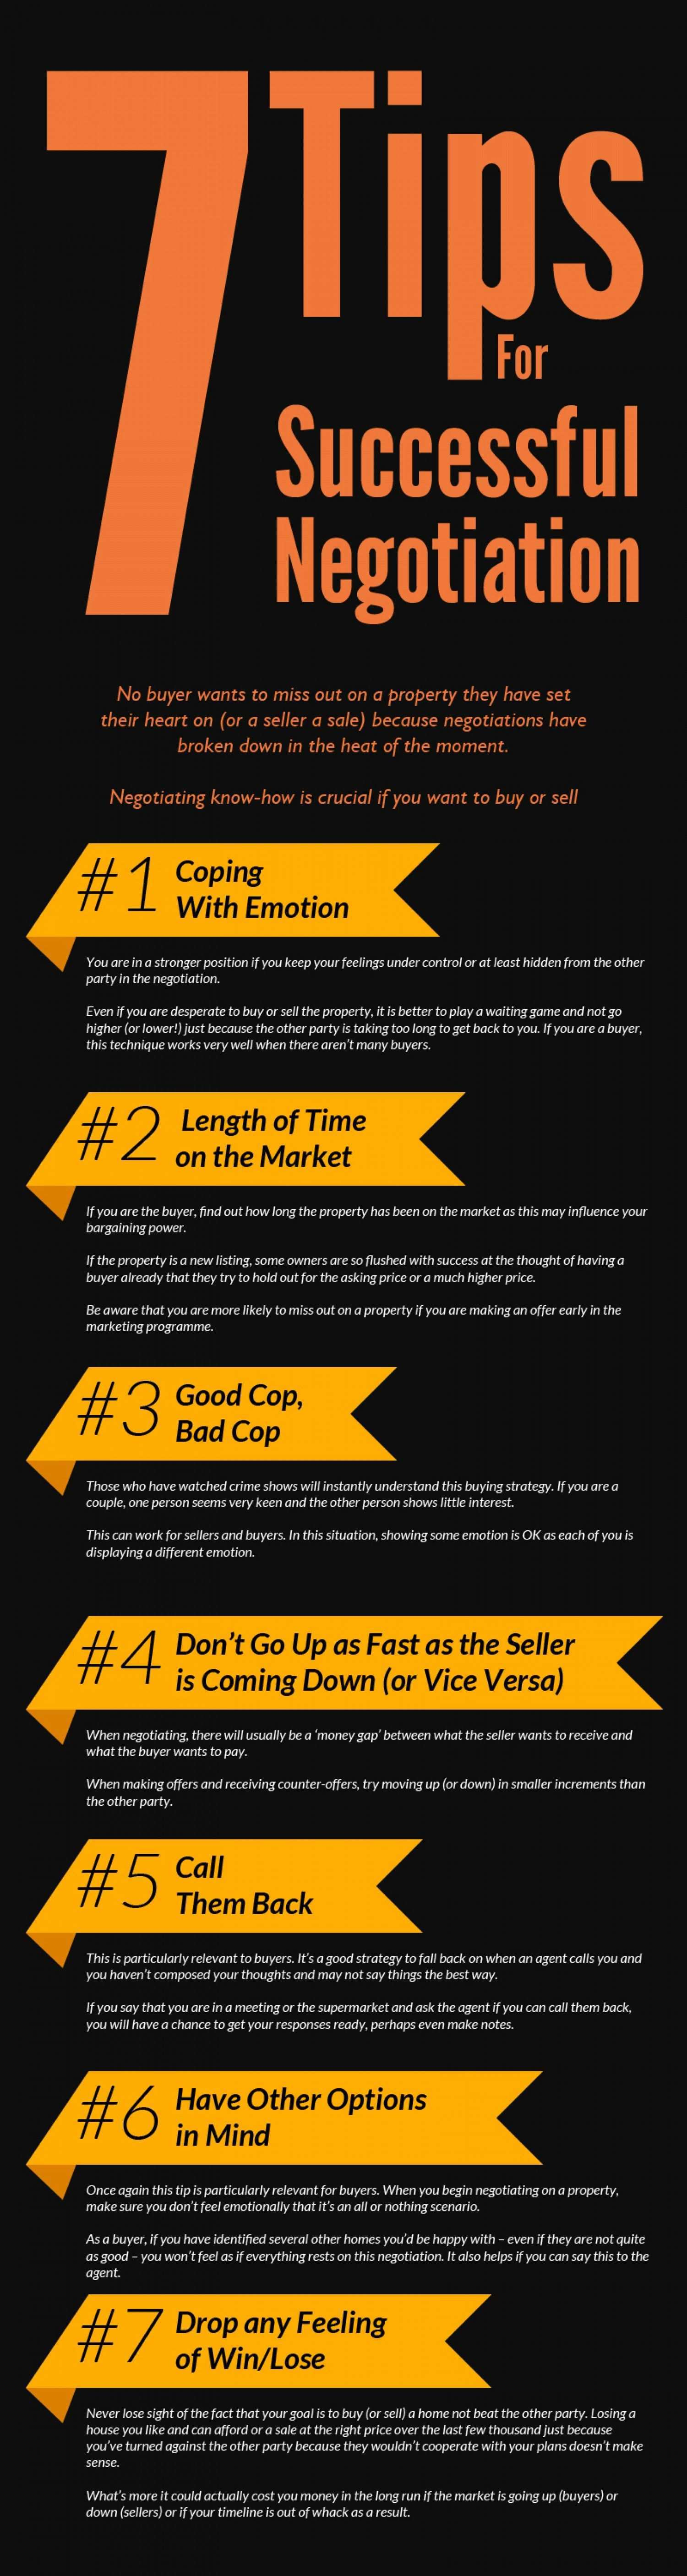 7 Tips For Successful Negotiation Infographic With Images Negotiation Skills Negotiation Business Management